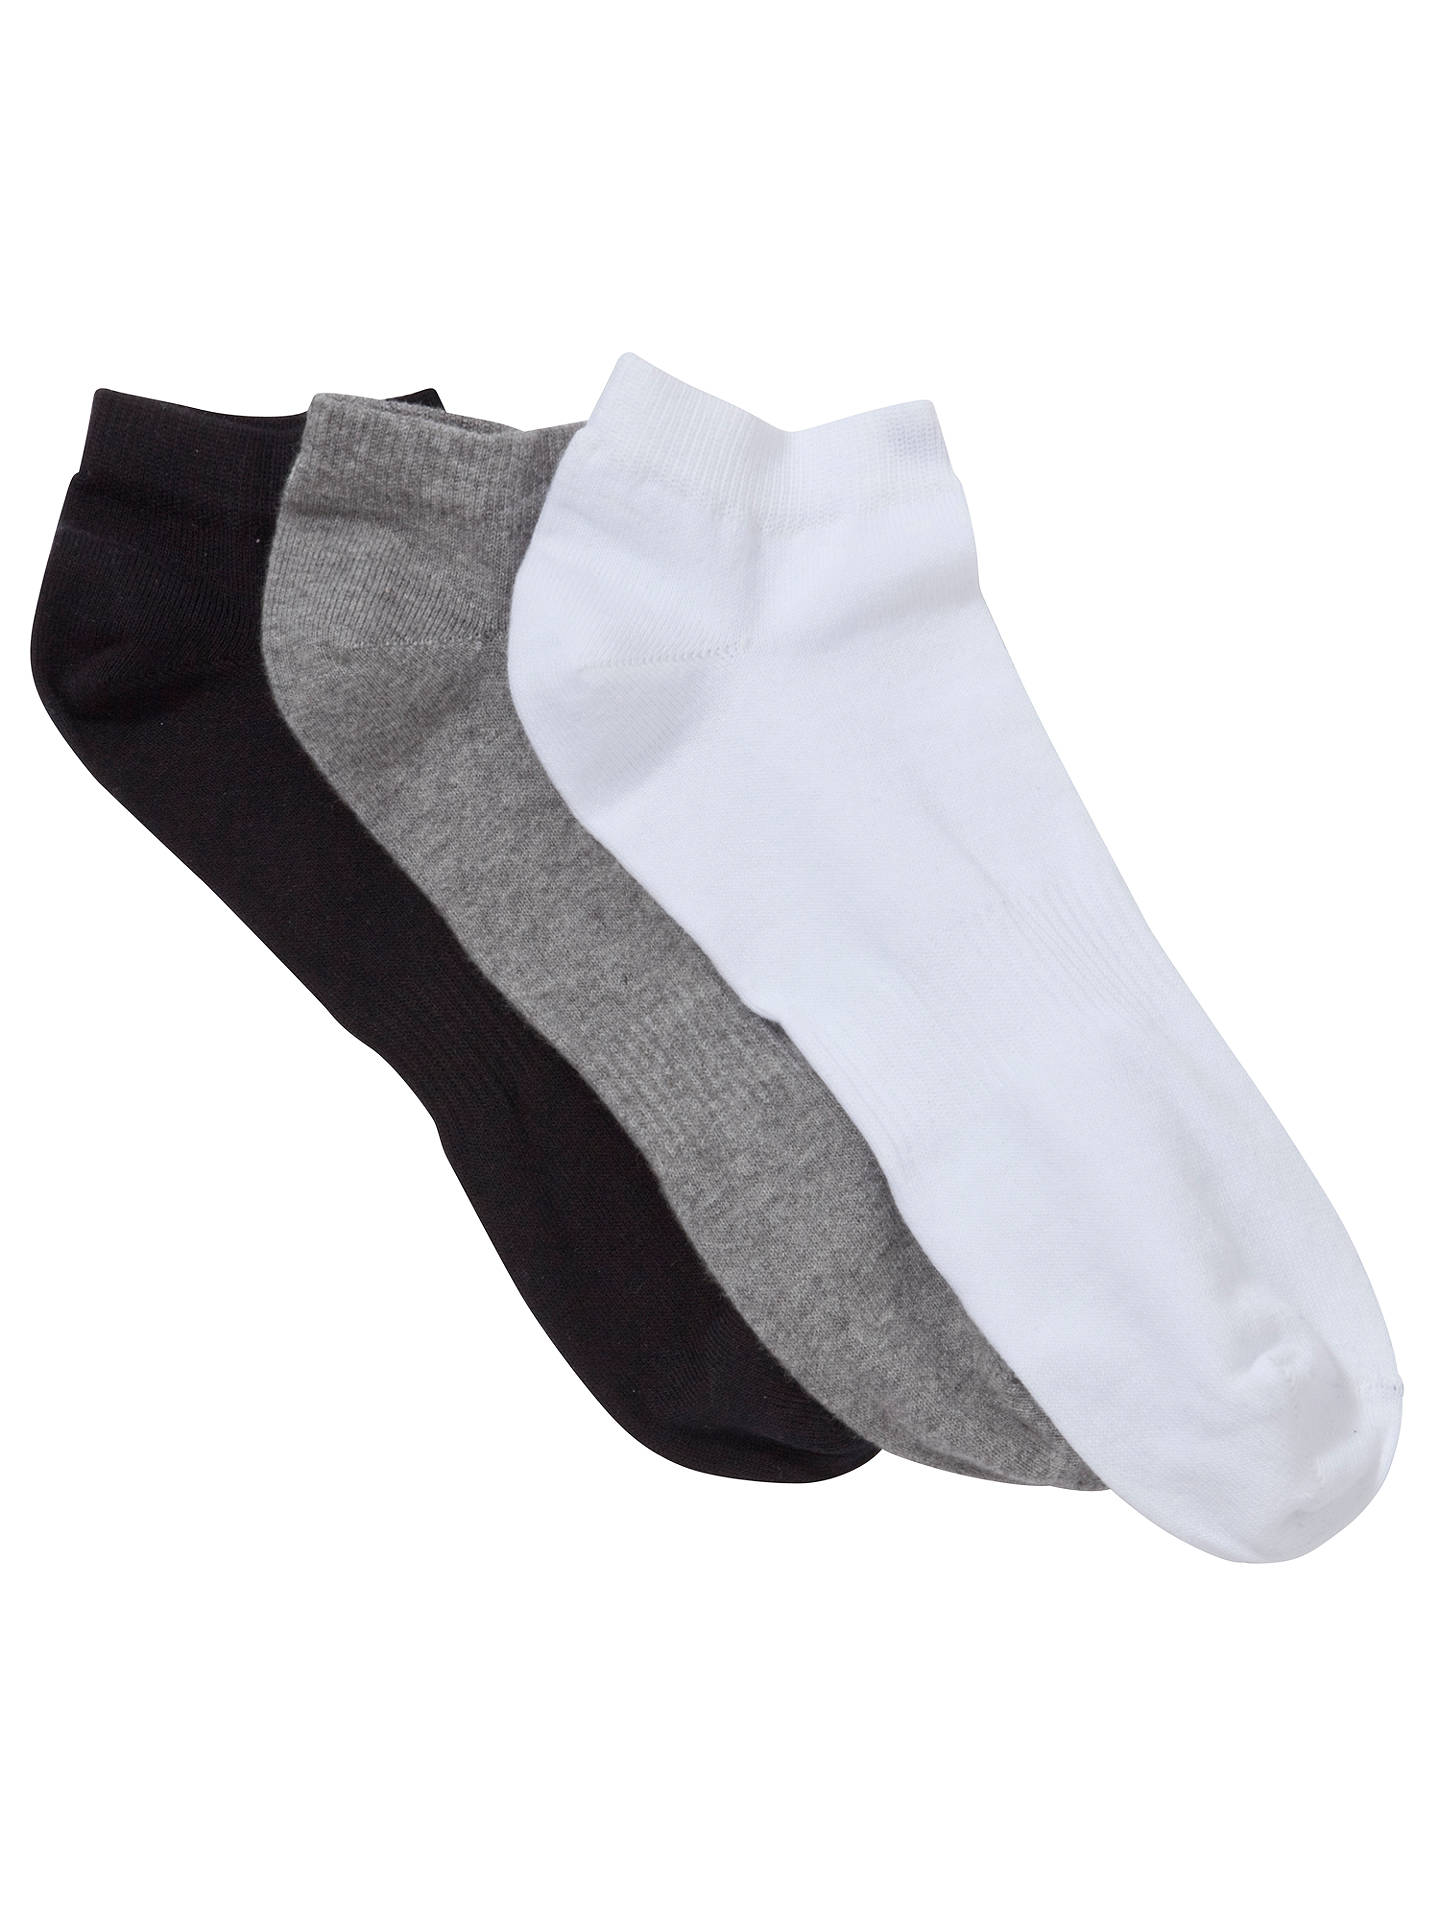 BuyJohn Lewis & Partners Liner Socks, Pack of 3, Black/Grey/White, 3-5.5 Online at johnlewis.com